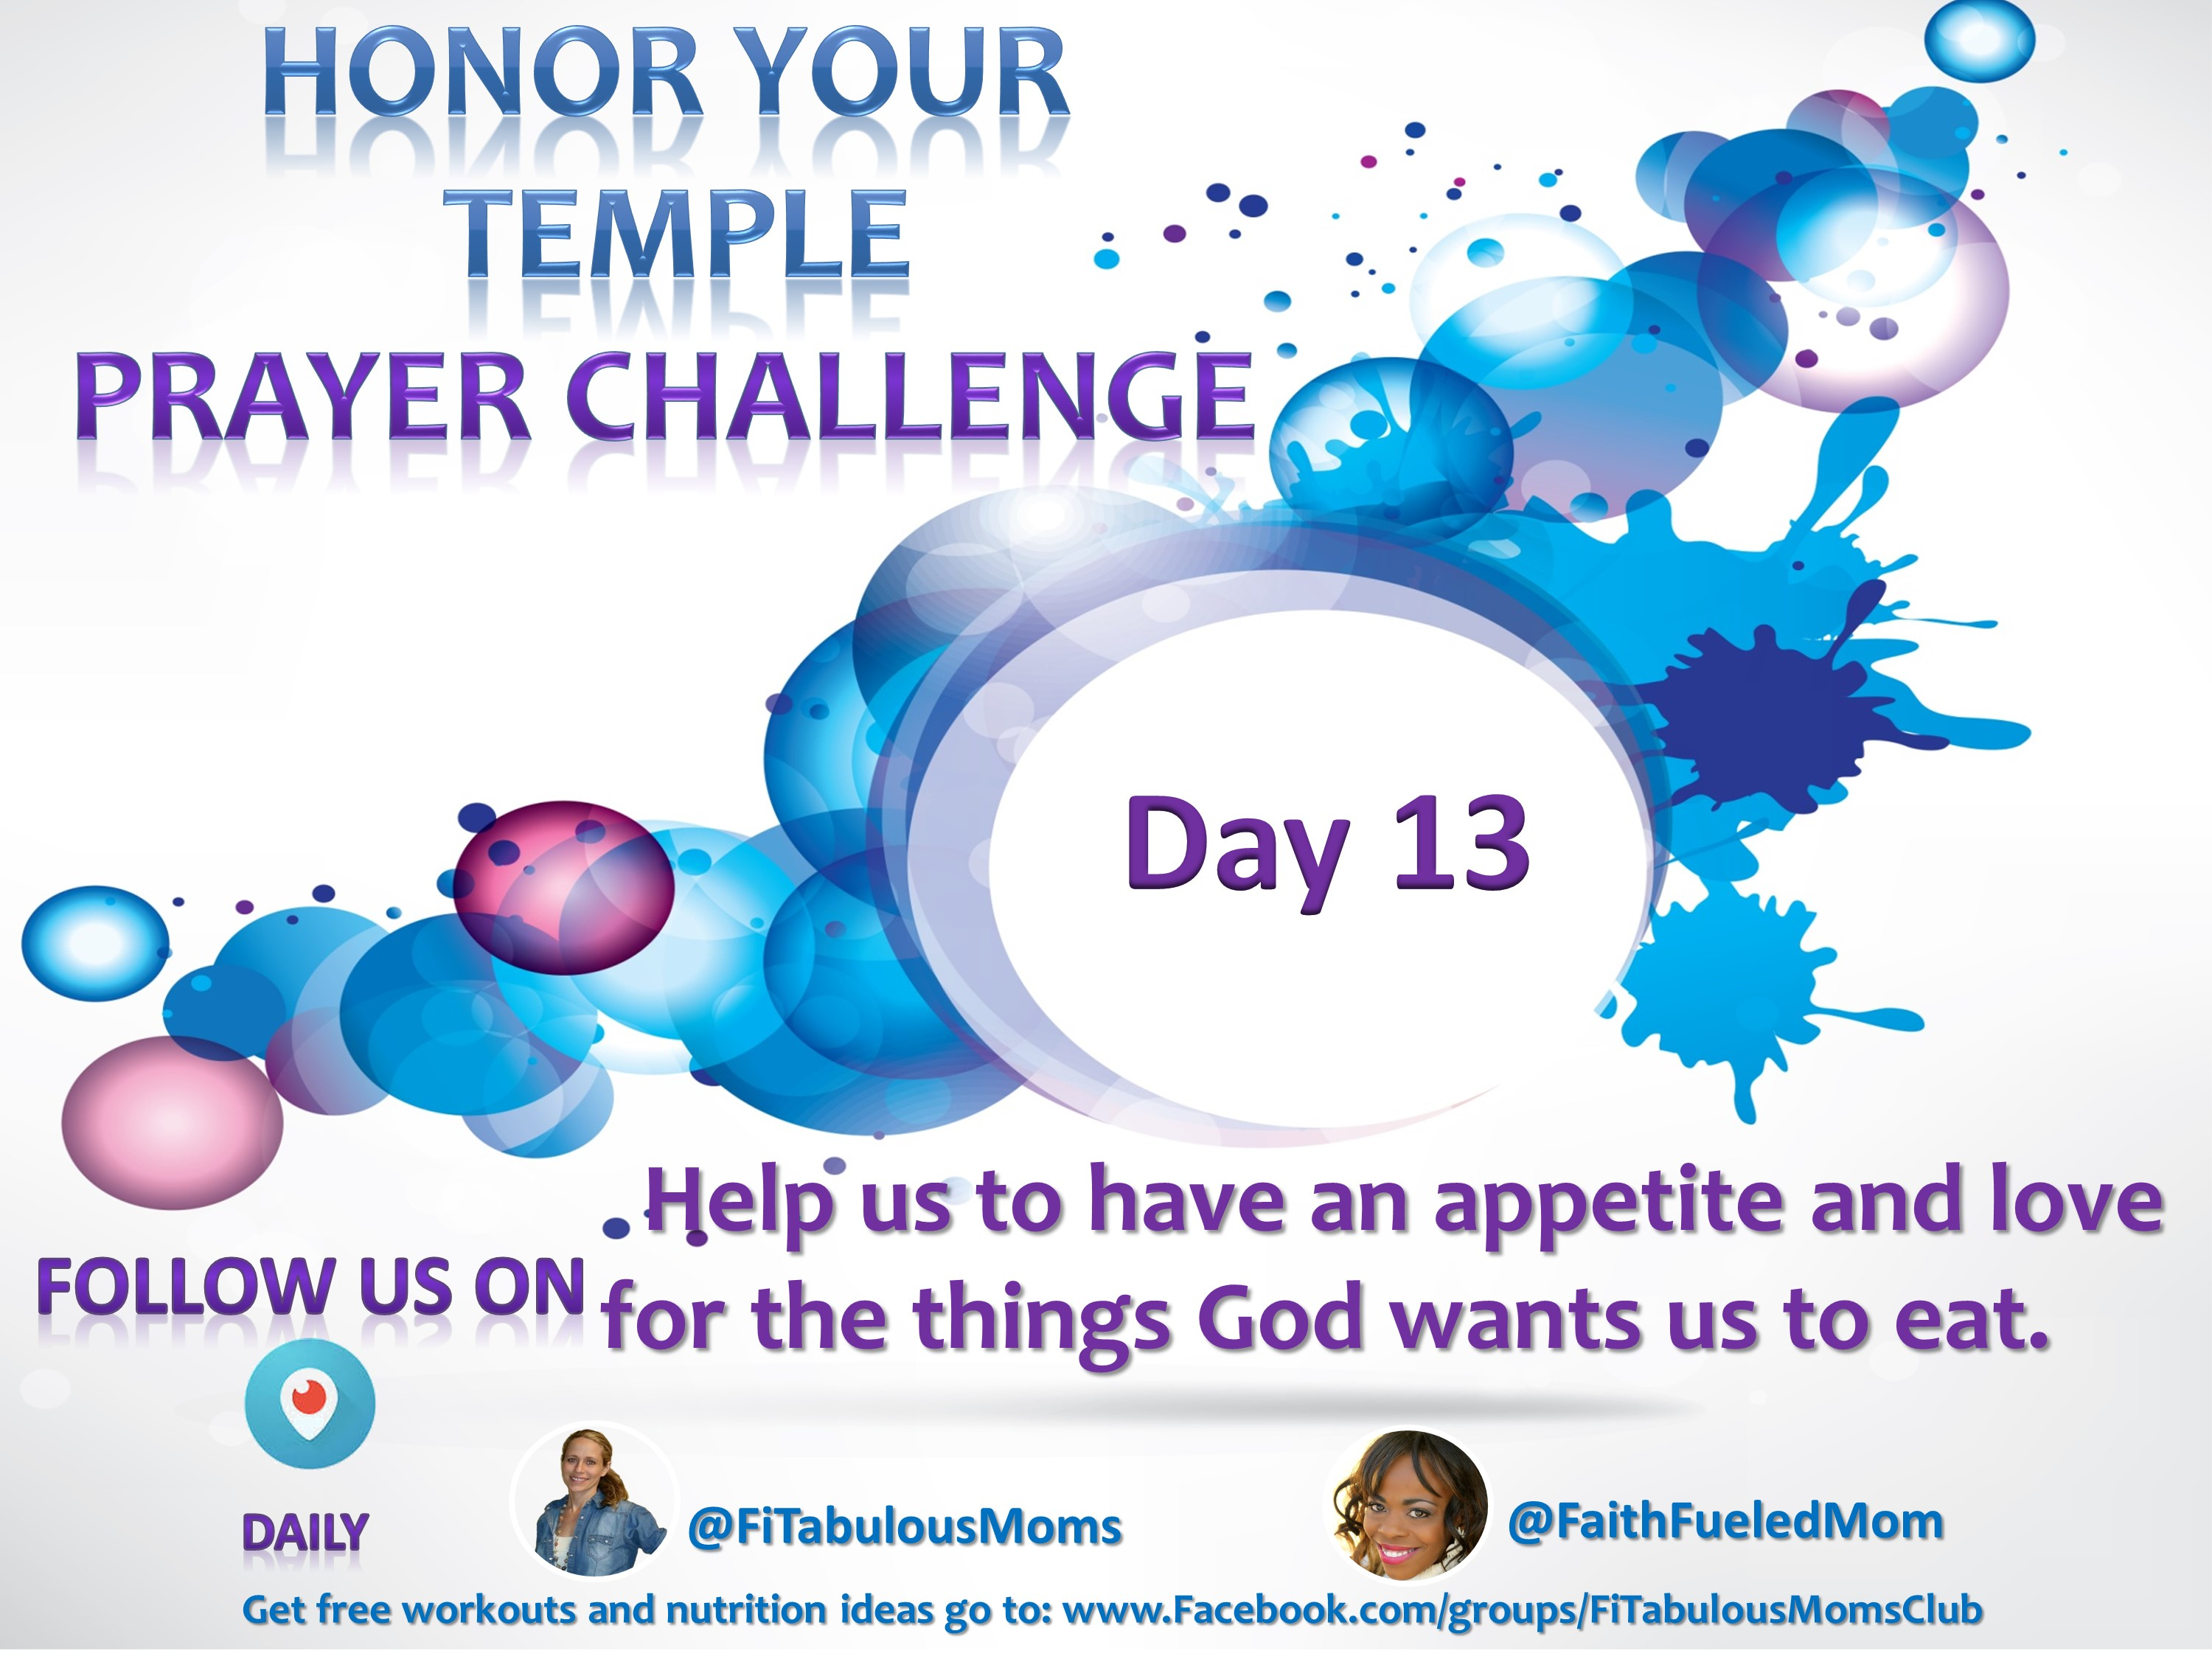 Day 13 Honor Your Temple Prayer Challenge